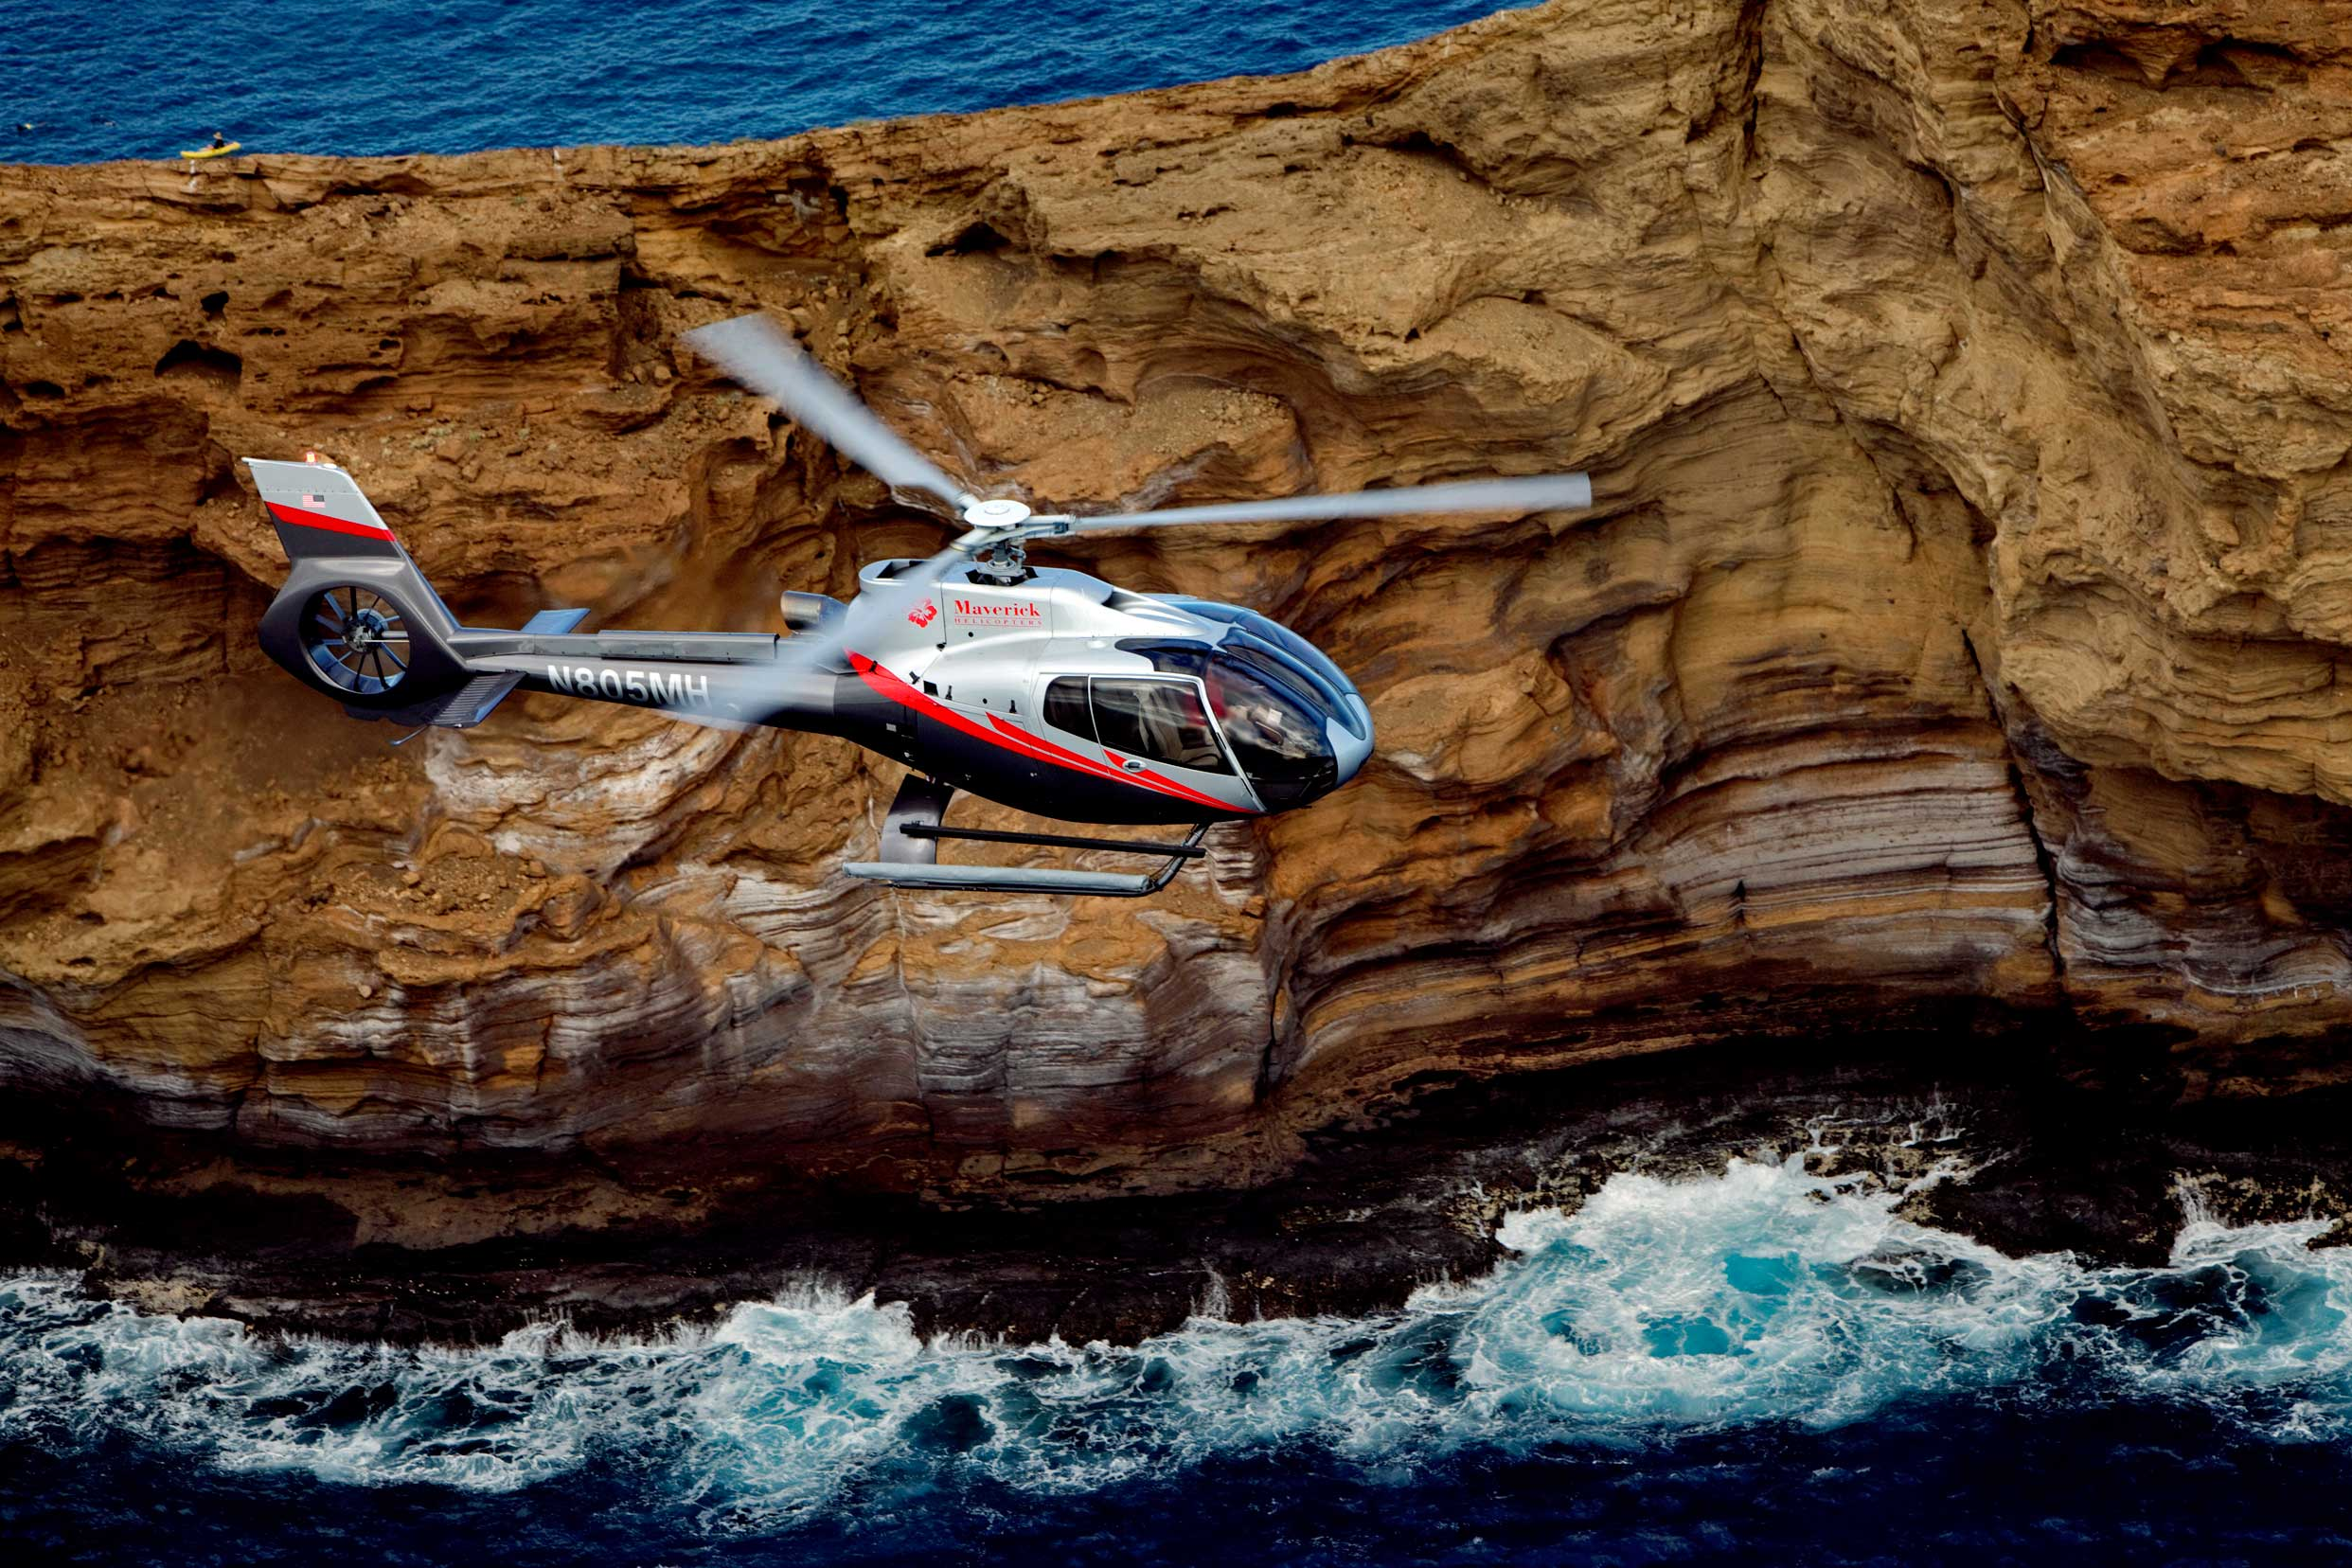 maverick helicopter tours with 7496351 Maverick Helicopters Maui on Grand Canyon Helicopter Tour Groupon as well Five Best Arizona Canyons To See This Summer besides Route66 tour lasvegas cars 10 as well Vol Helicoptere Grand Canyon additionally Private Jet Best Value.